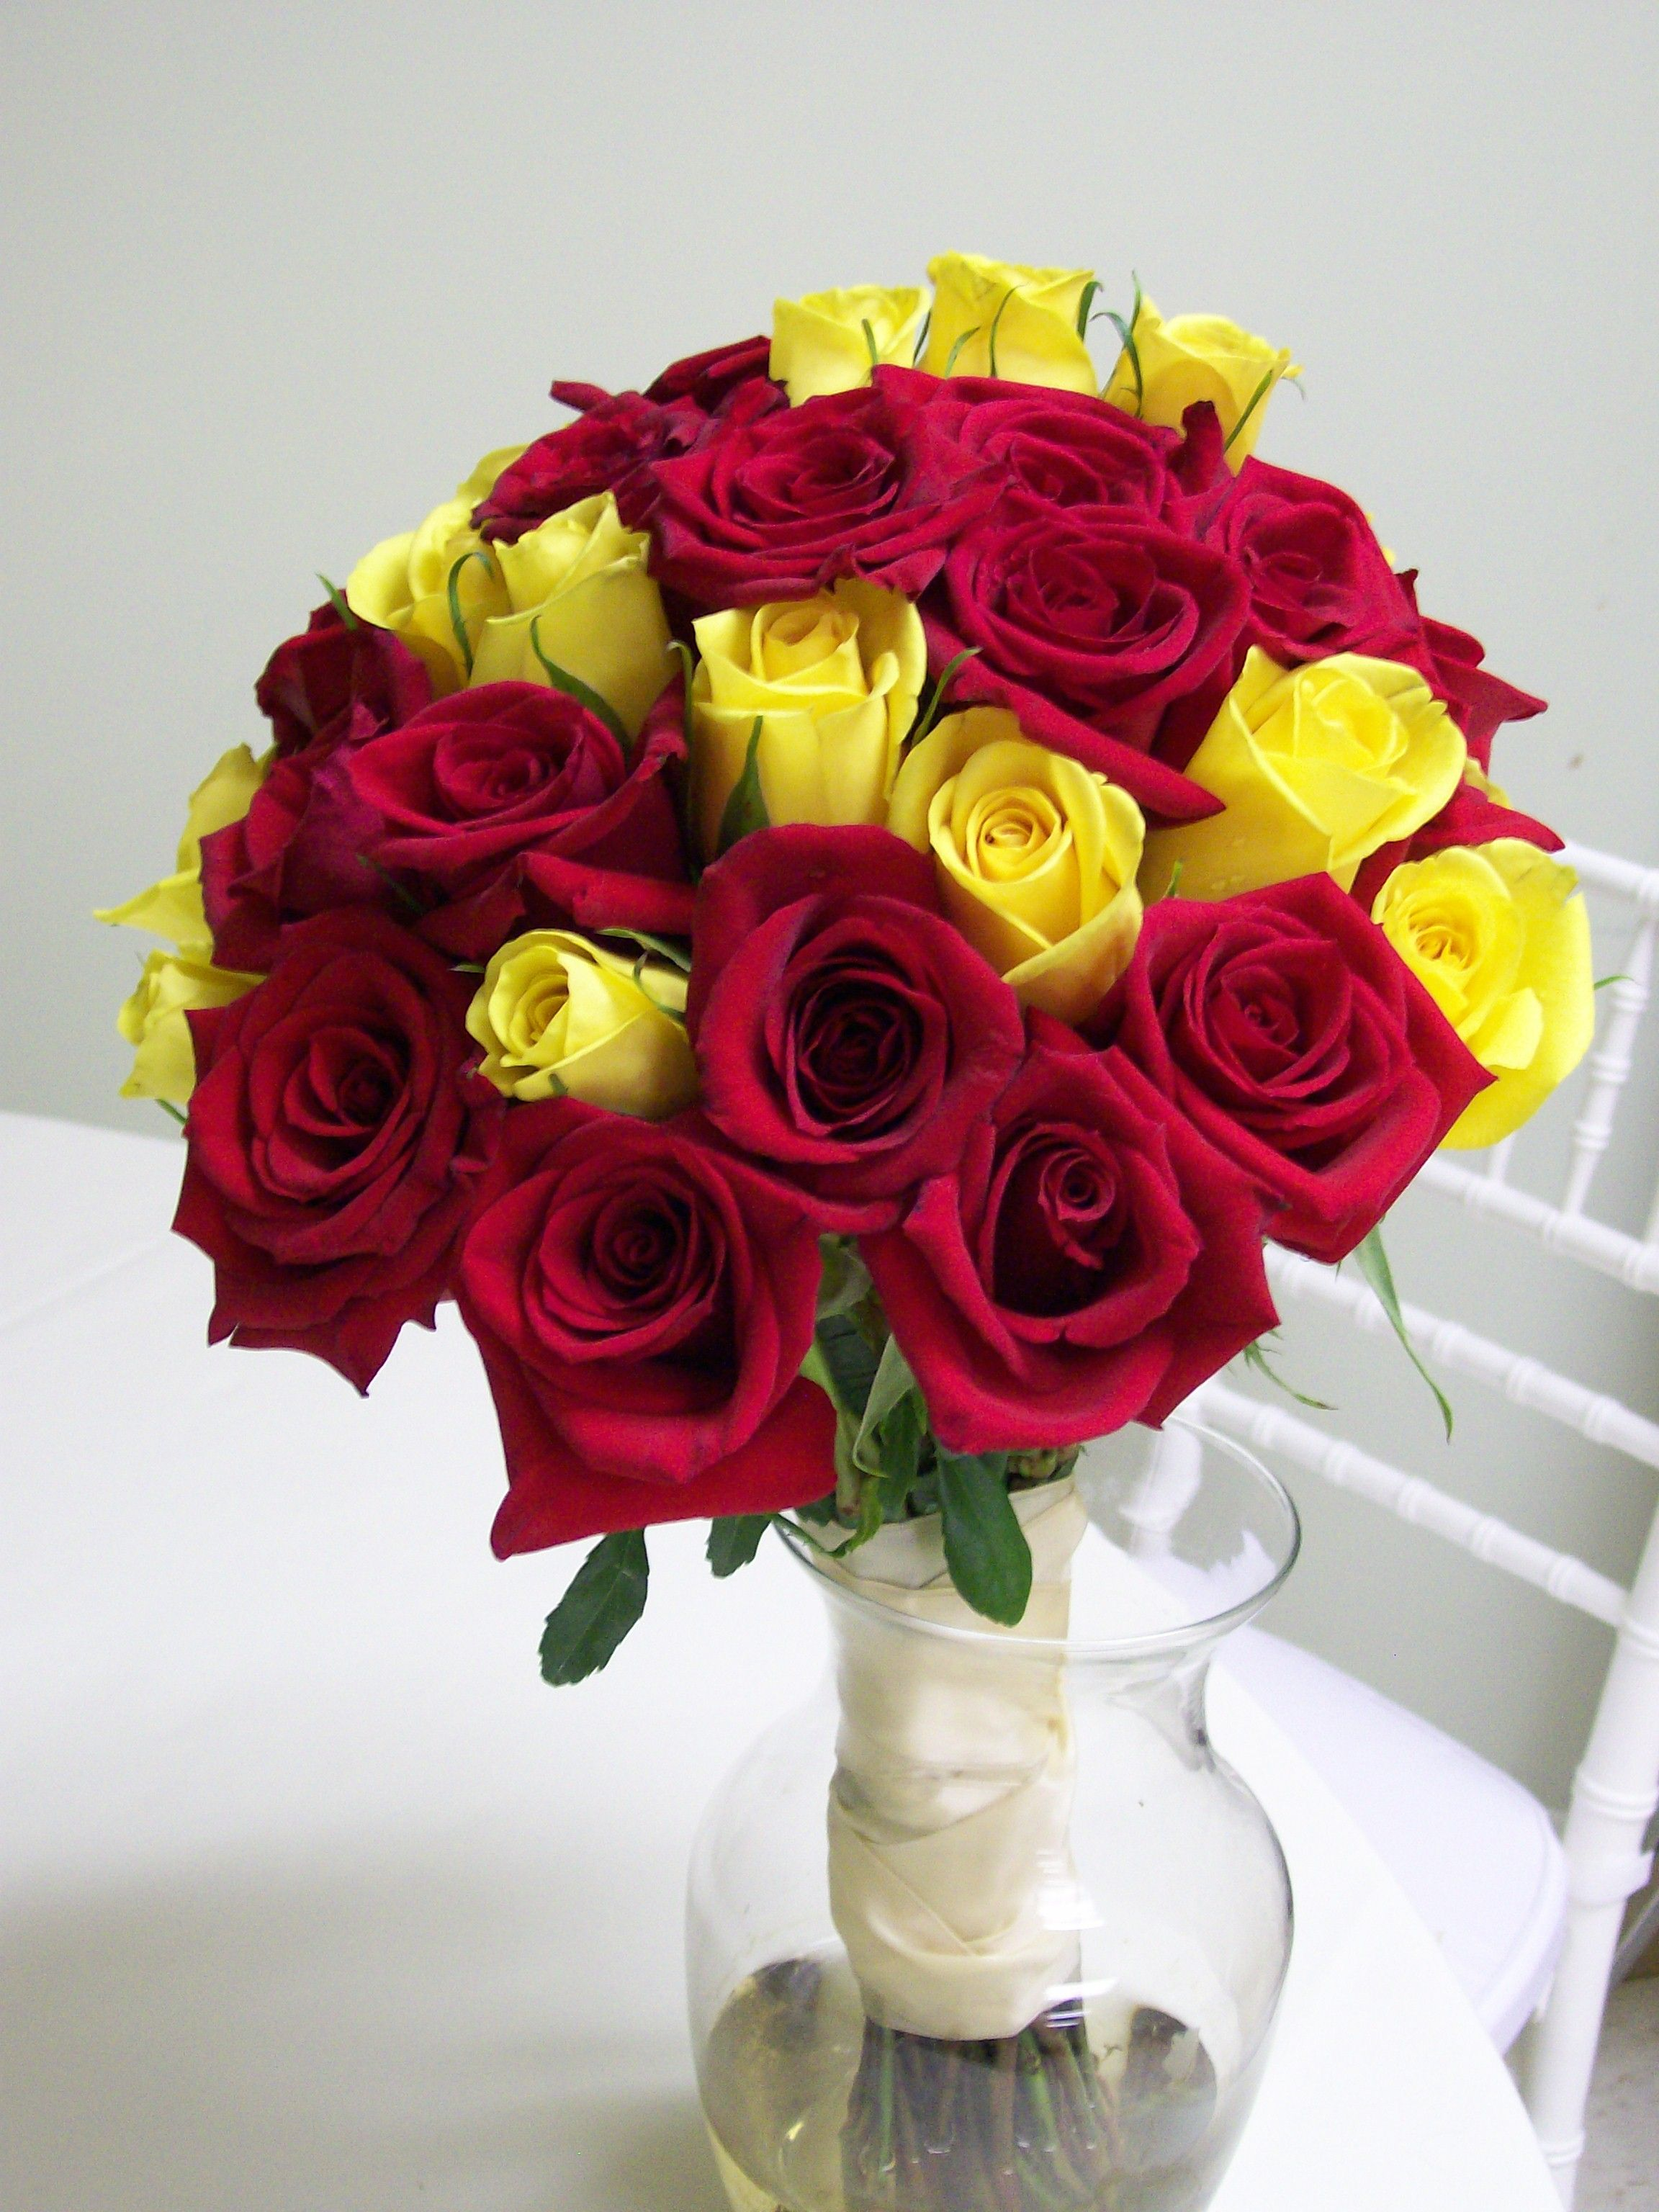 Wedding Flowers Red And Yellow : Red and yellow wedding flowers carrie anne powell ?